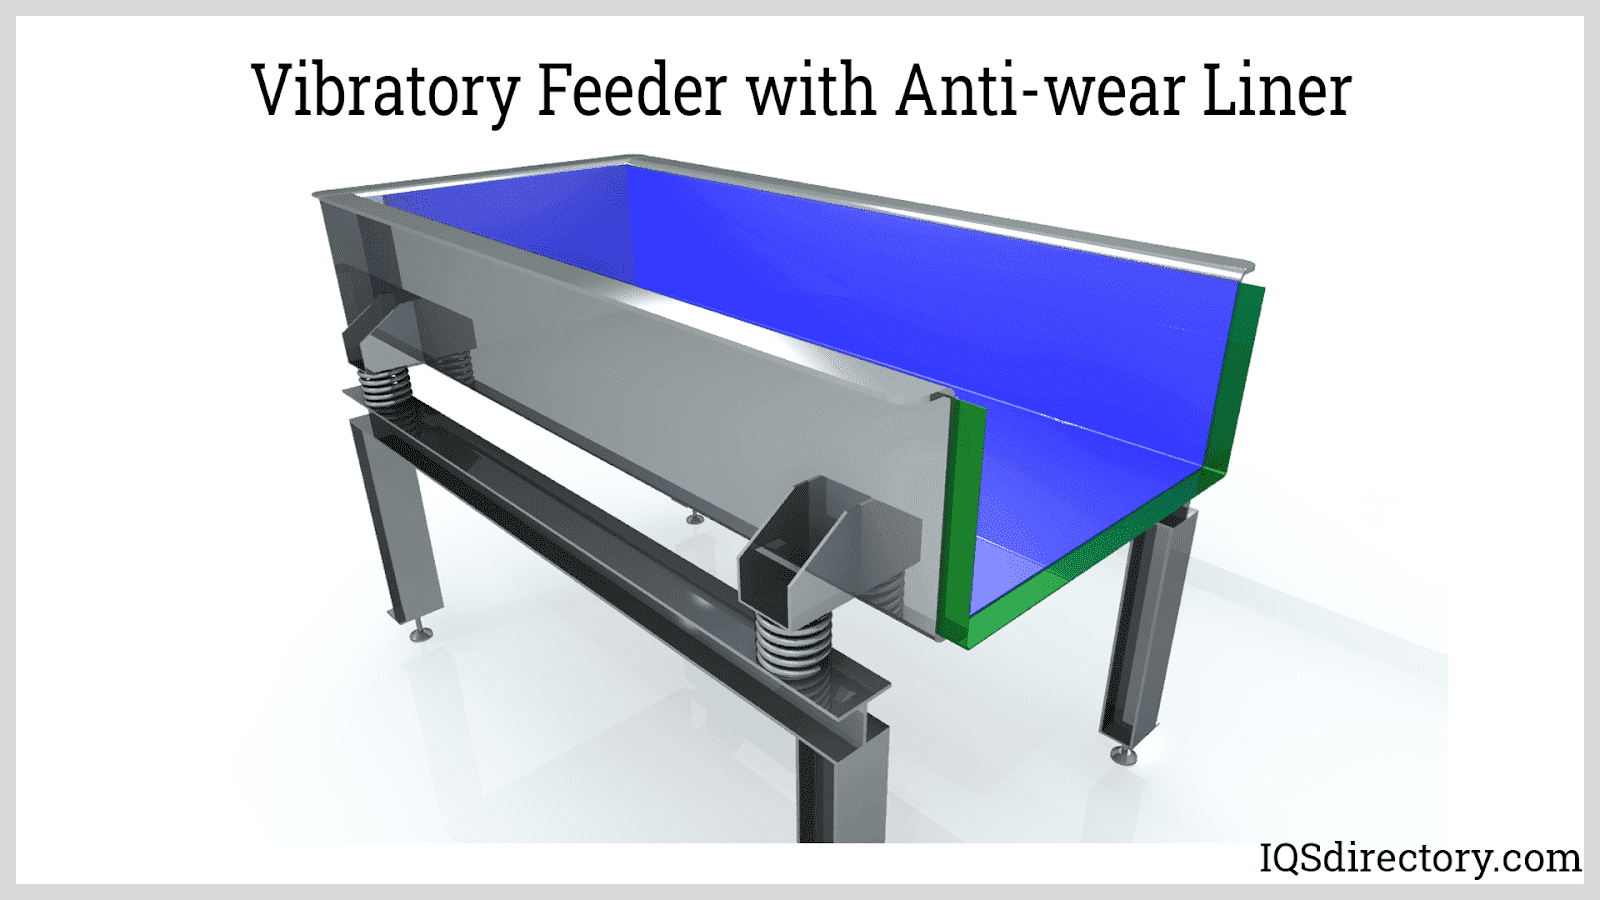 Vibratory Feeder with Anti-wear Liner